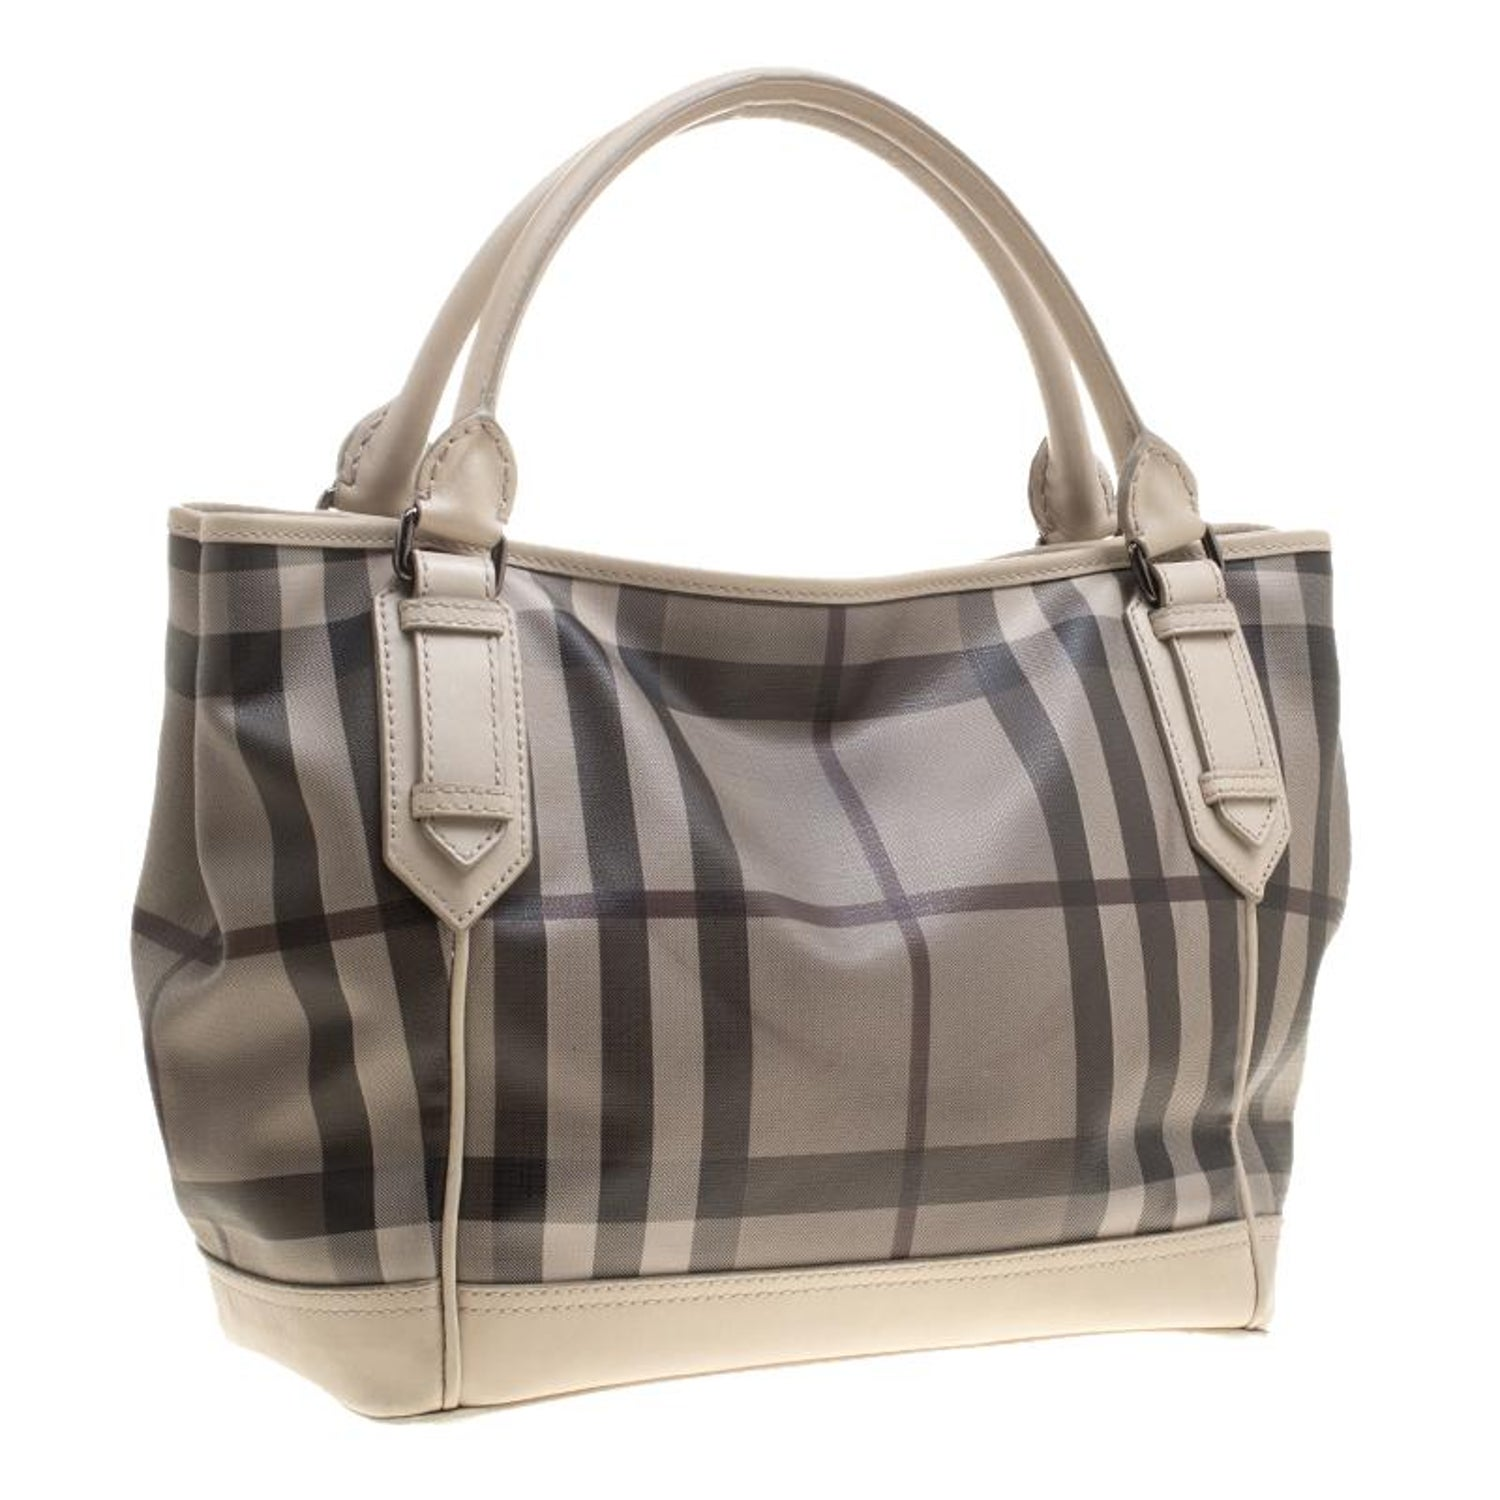 7315b83c0940 Burberry Beige Smoke Check PVC and Leather Tote at 1stdibs